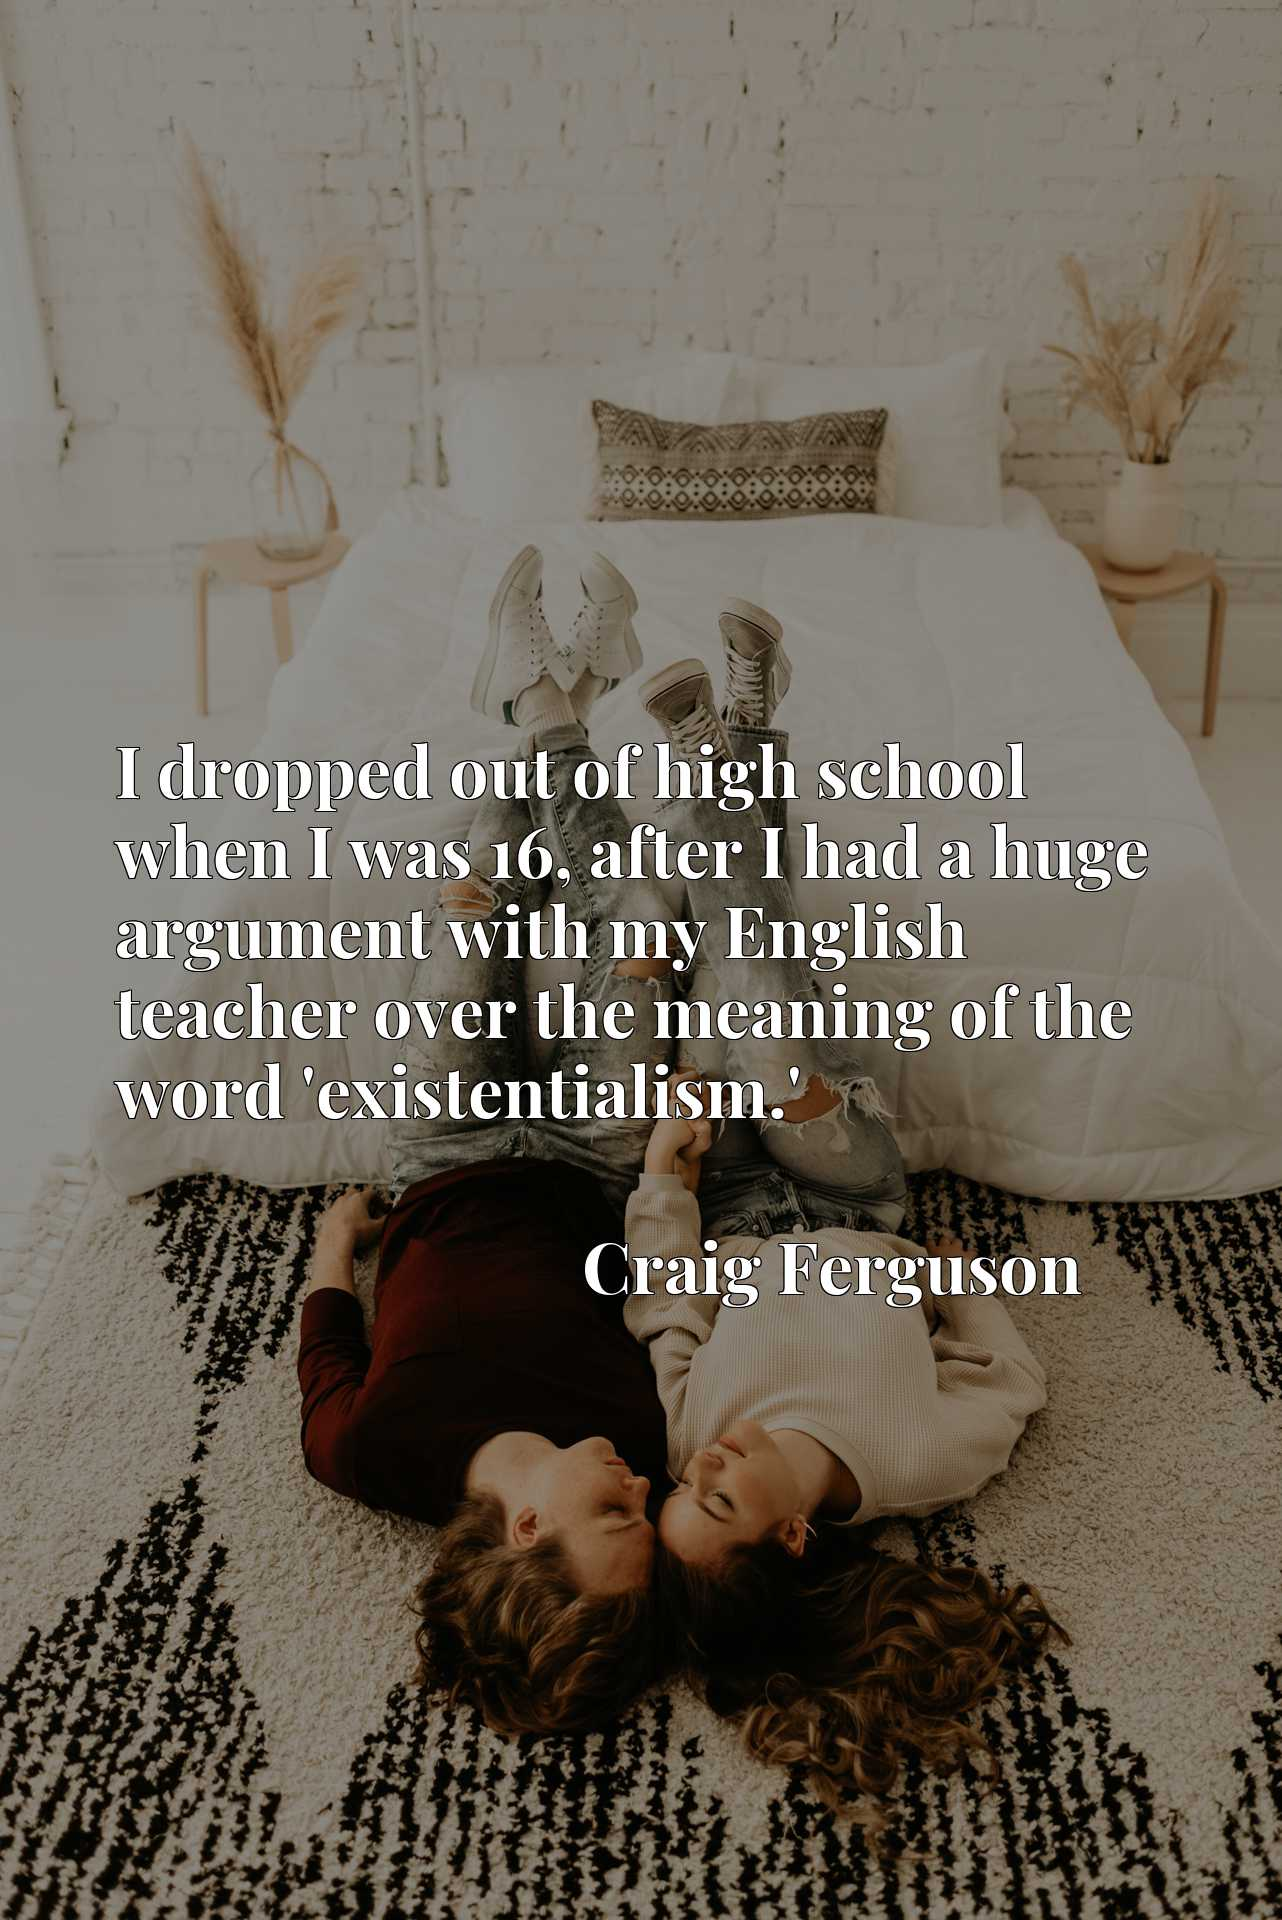 Quote Picture :I dropped out of high school when I was 16, after I had a huge argument with my English teacher over the meaning of the word 'existentialism.'